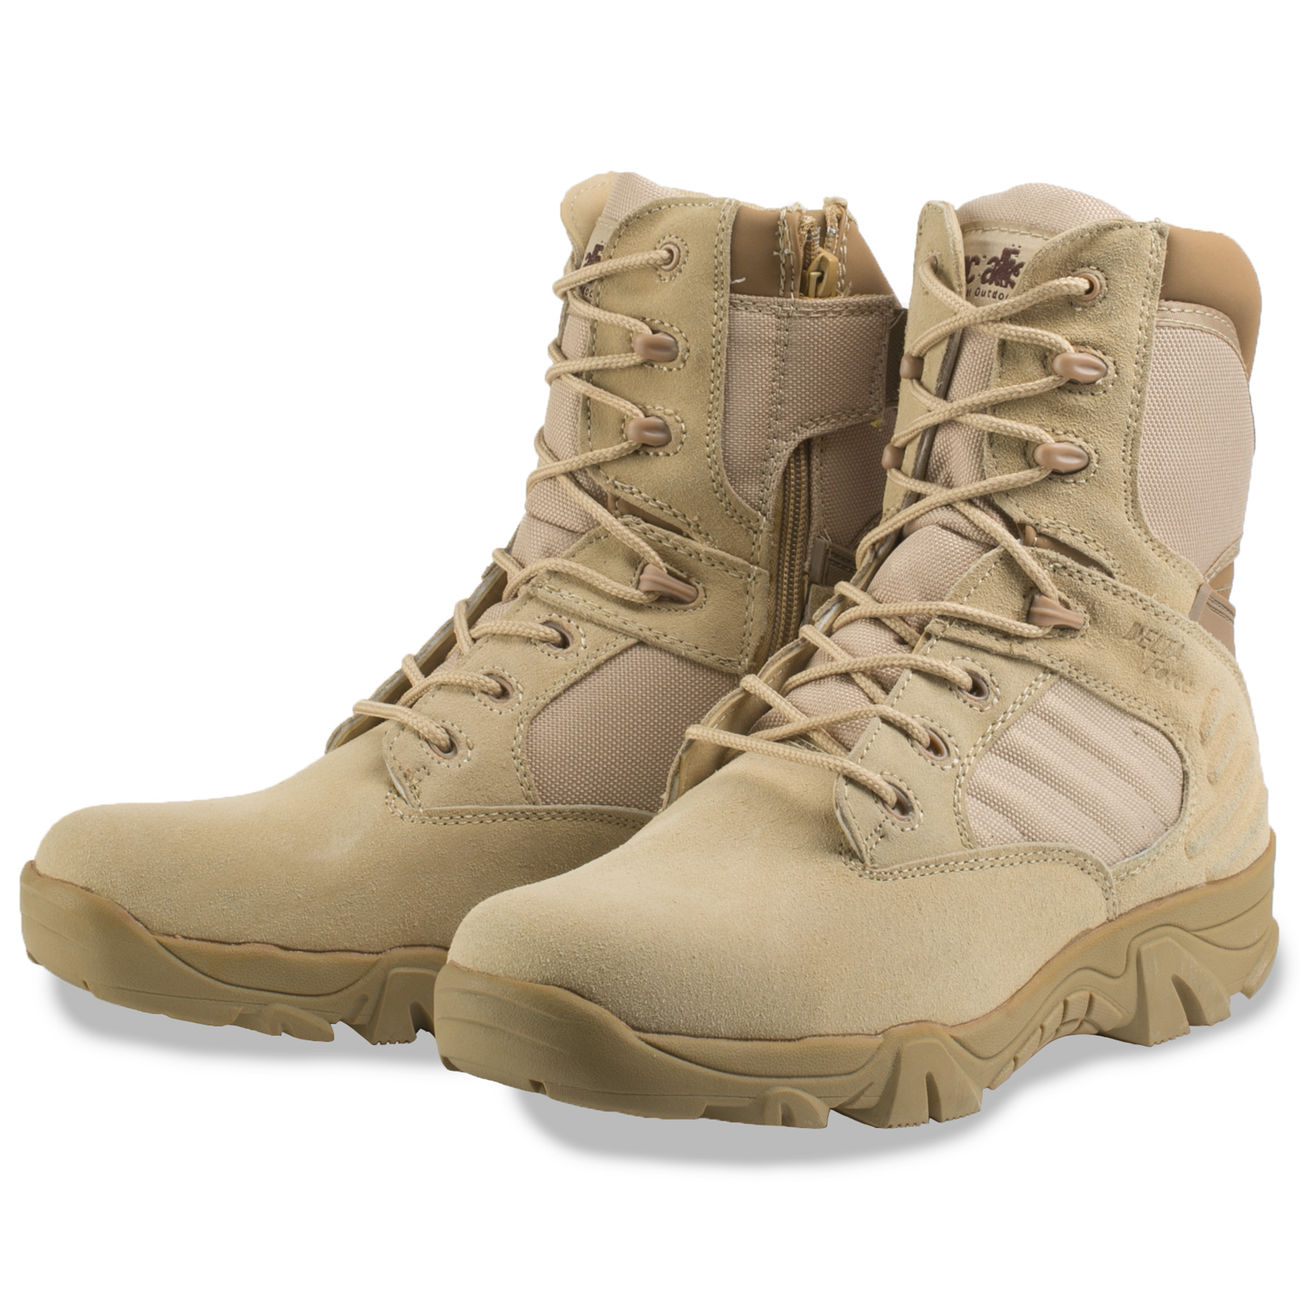 McAllister Stiefel Delta Force Tactical Outdoor Boots khaki 5